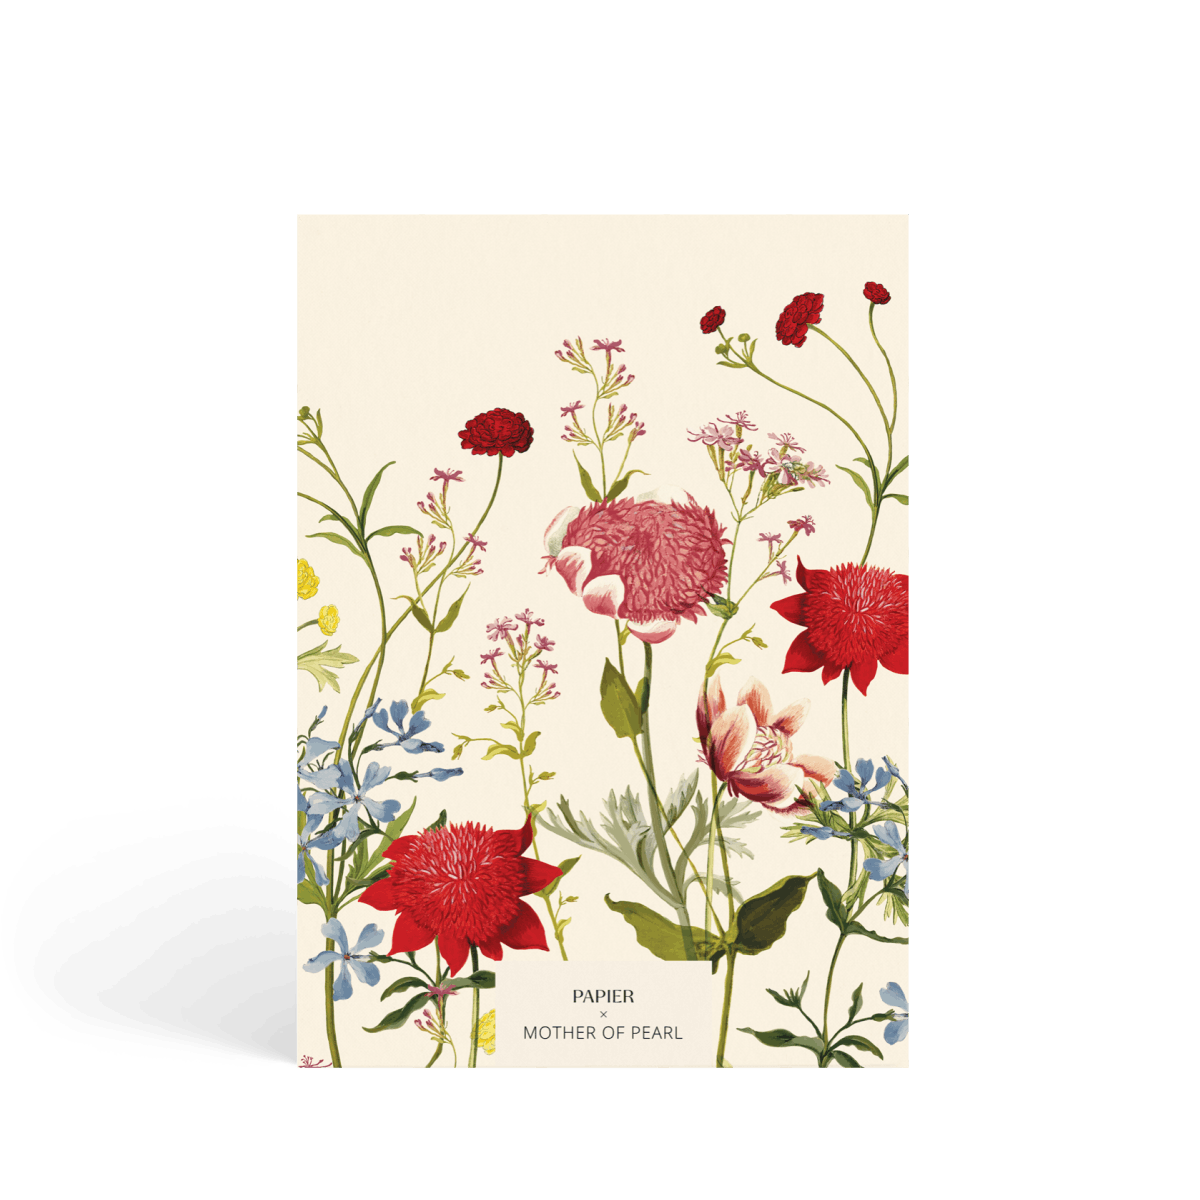 Https%3a%2f%2fwww.papier.com%2fproduct image%2f94697%2f5%2fwildflower 23690 back 1572017342.png?ixlib=rb 1.1